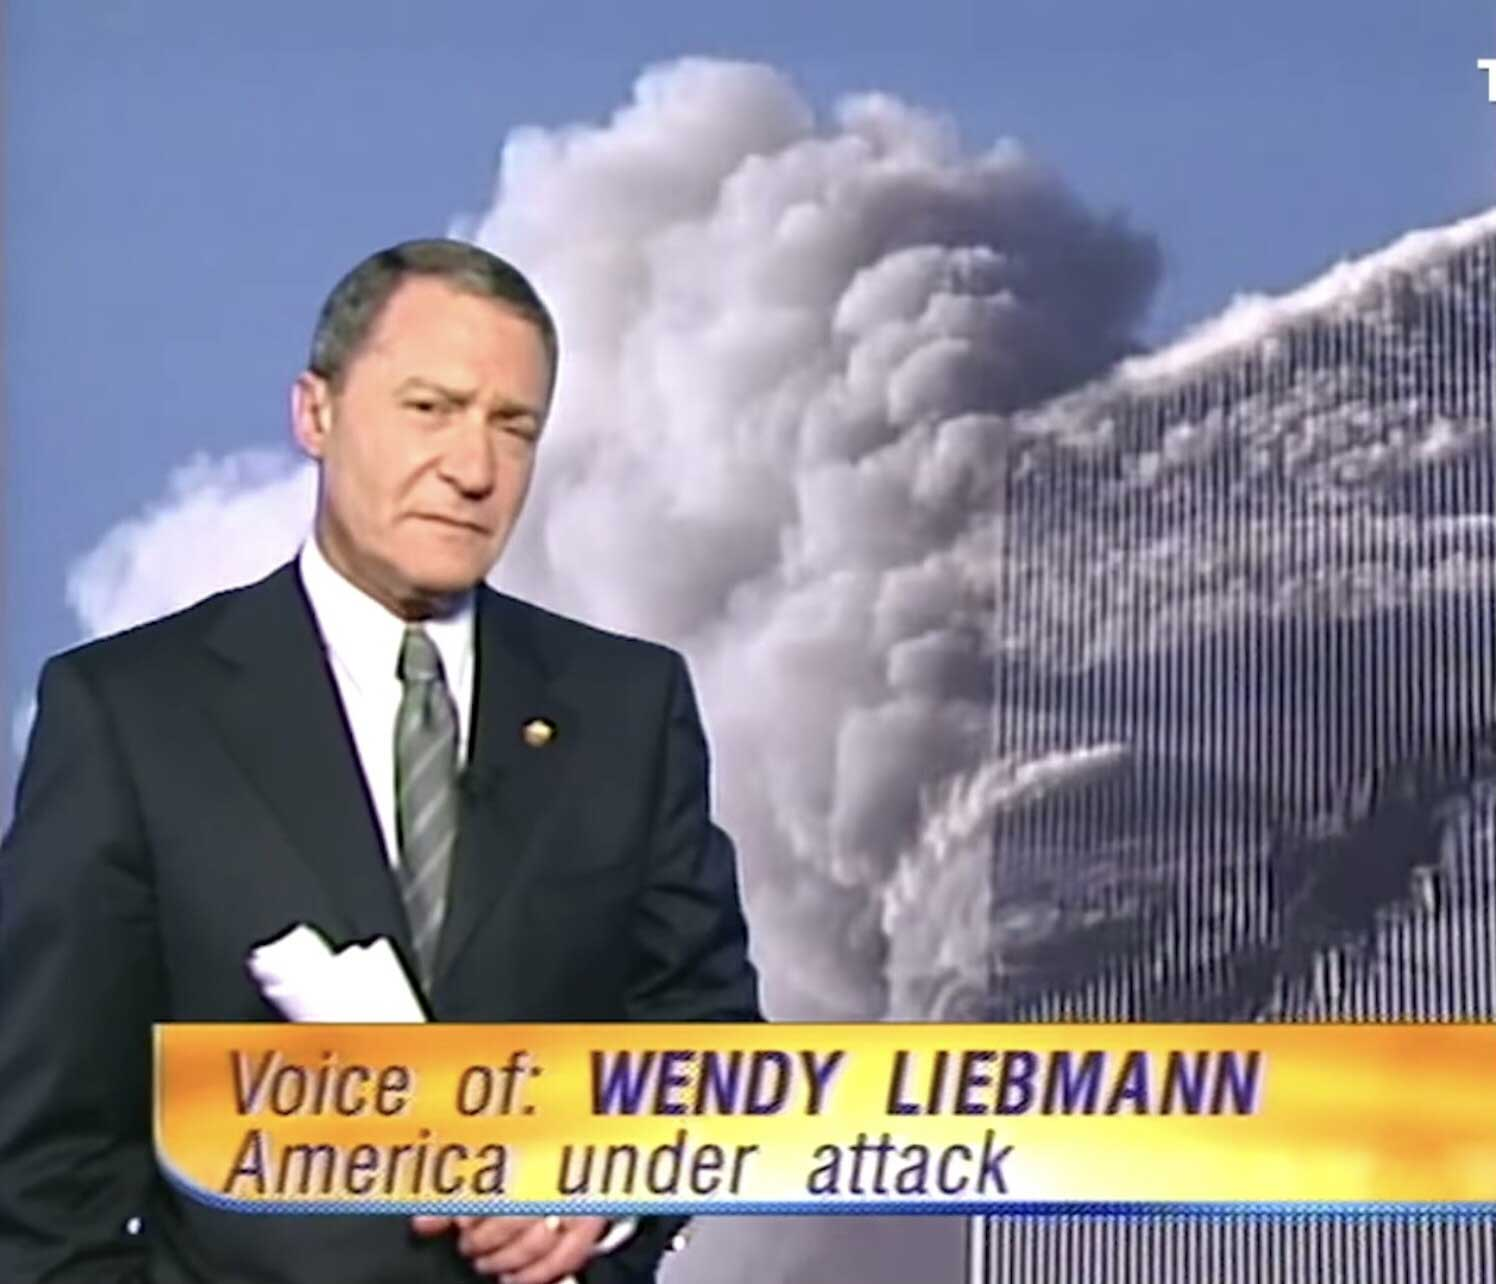 Steve Liebmann during the coverage of the September 11 attacks.